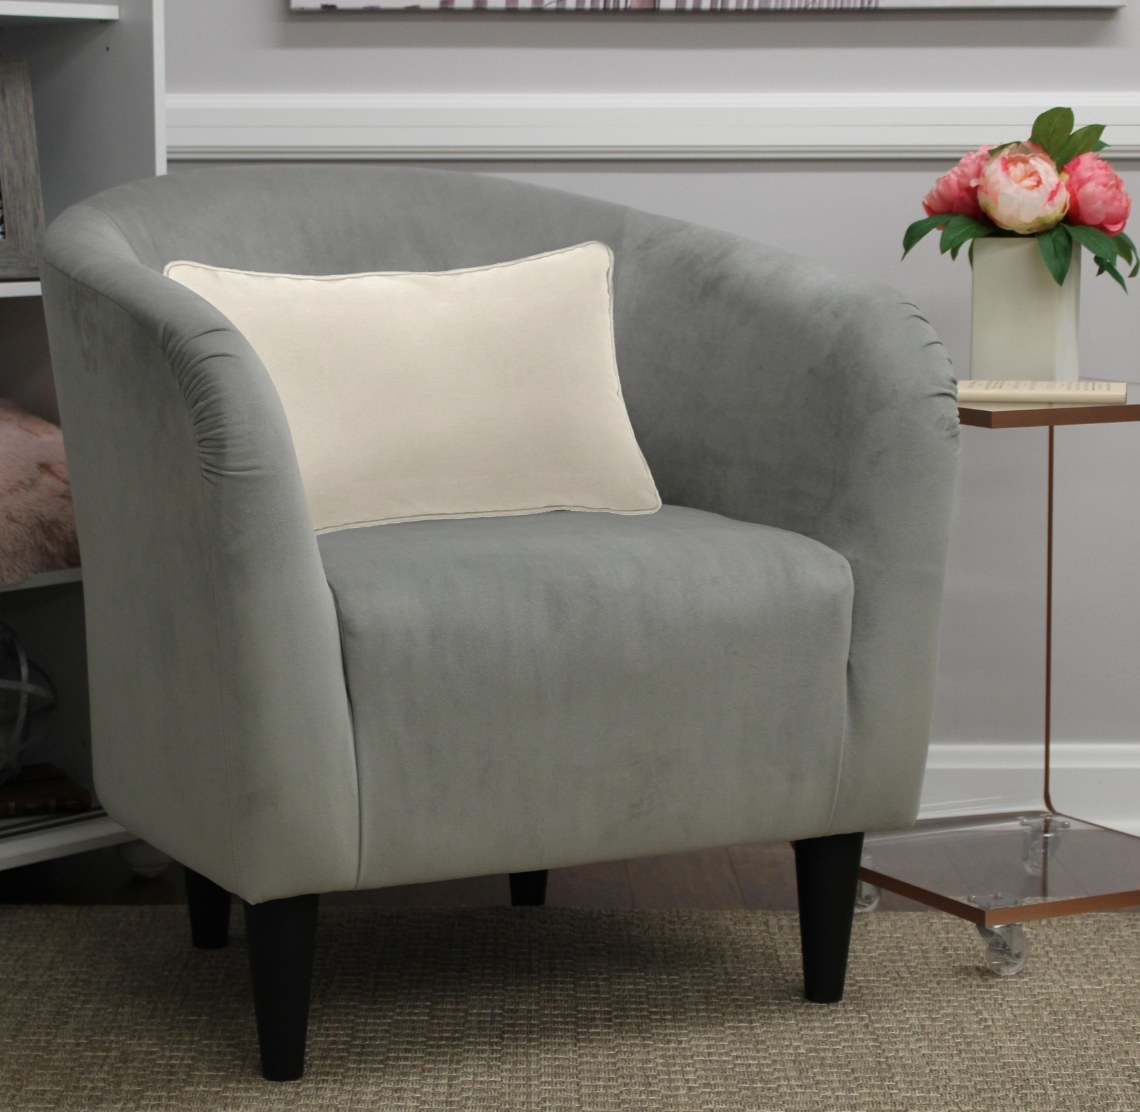 The accent chair in dove gray